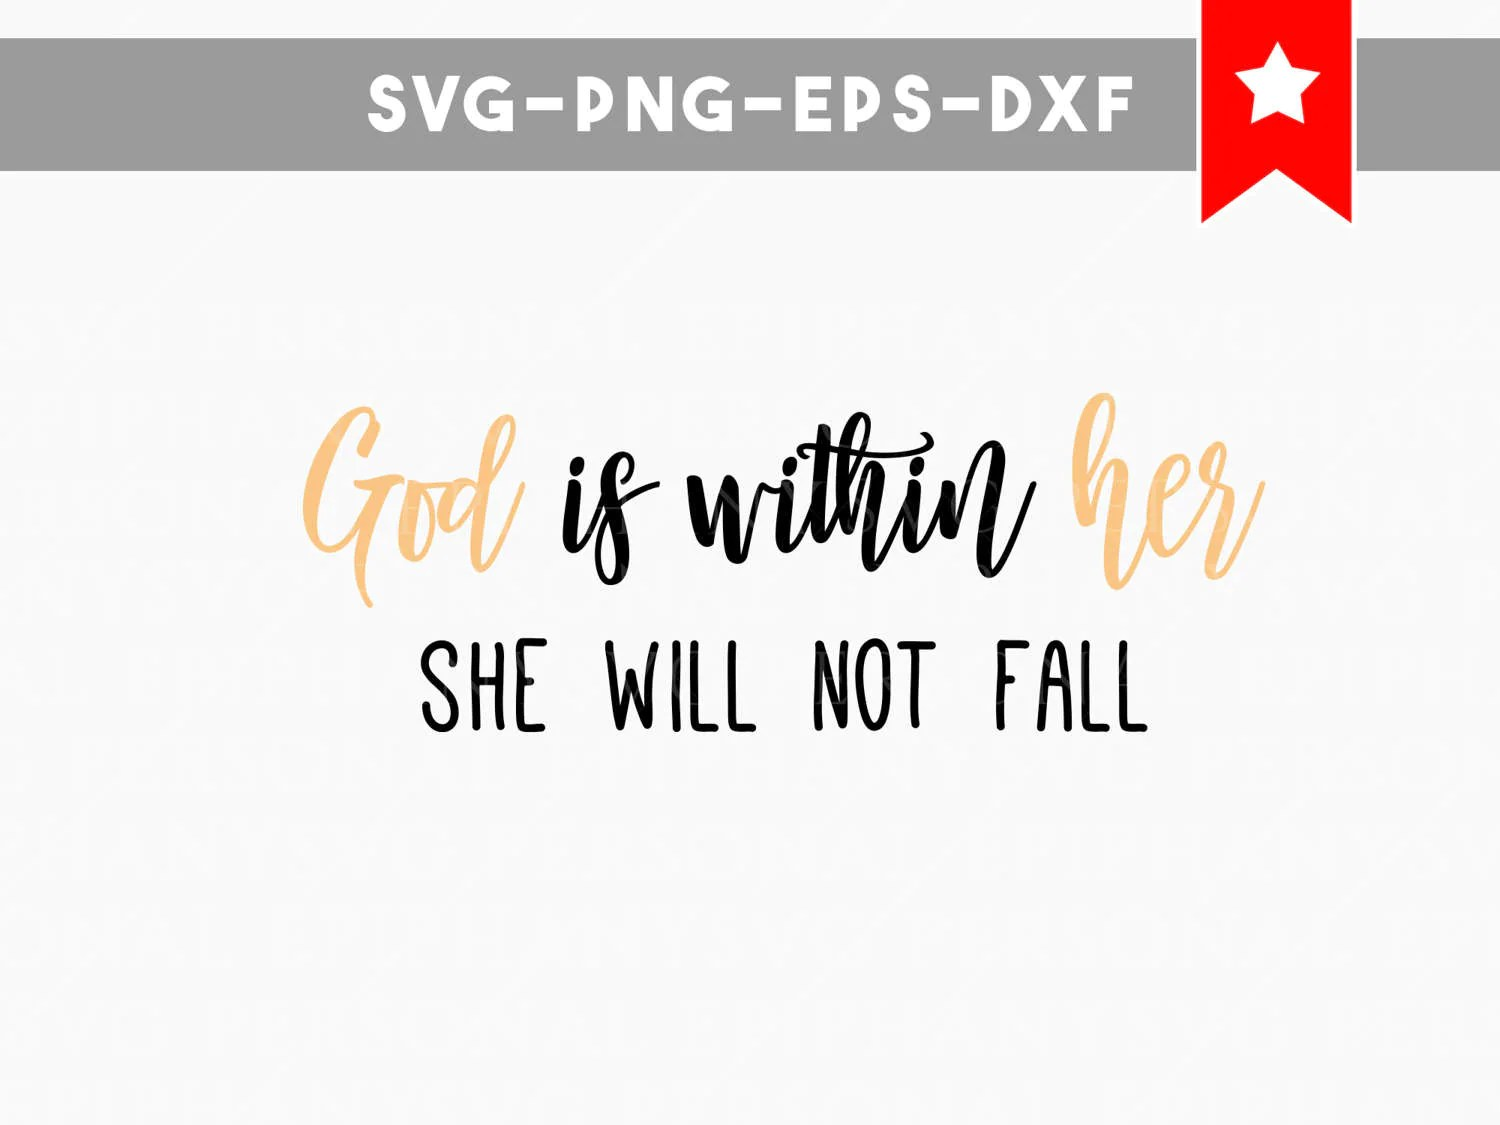 God Is Within Her She Will Not Fall Wallpaper God Is Within Her Svg She Will Not Fall Svg File Bible Quote